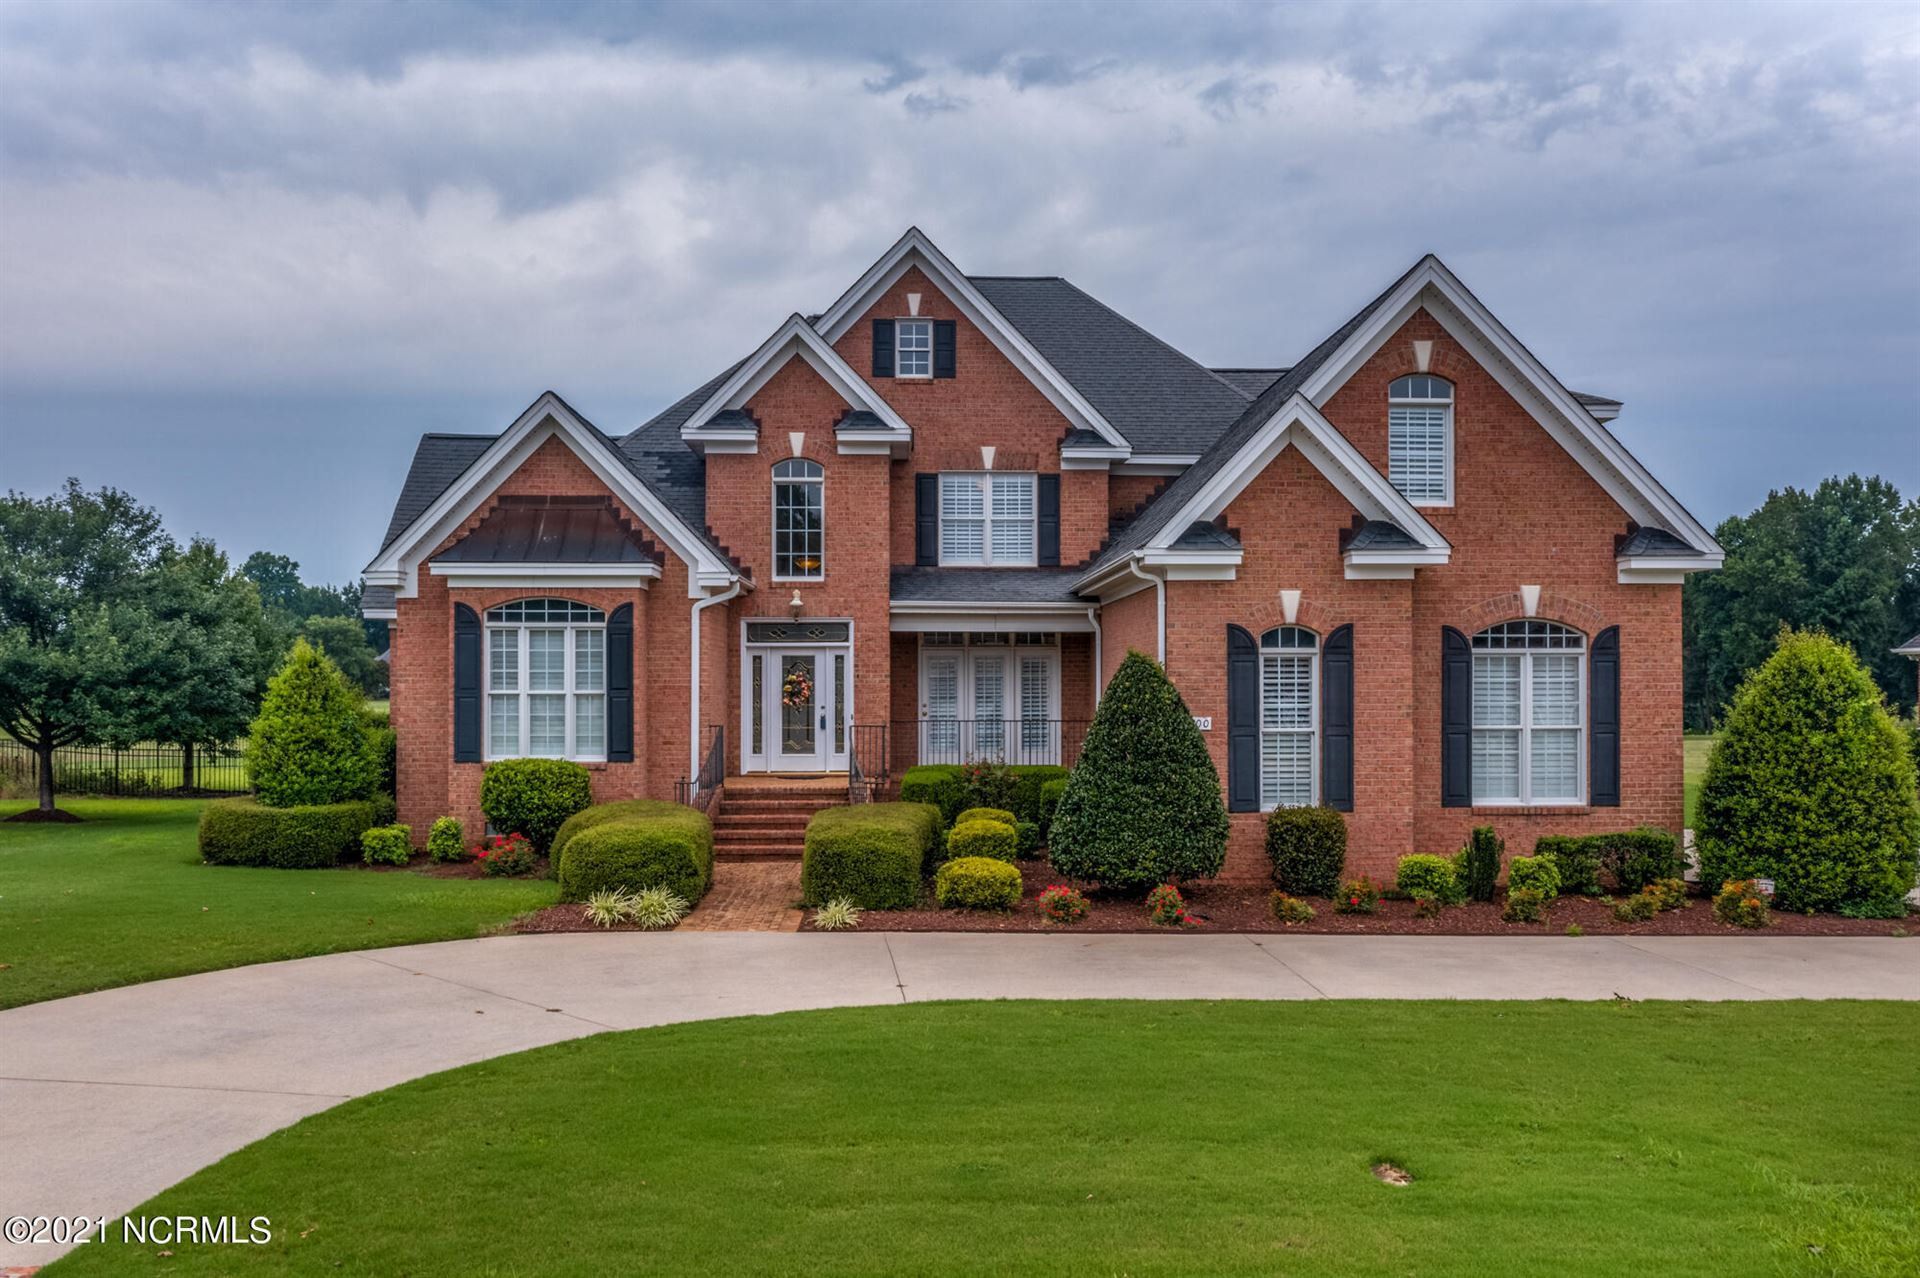 Photo of 600 Golf View Drive, Greenville, NC 27834 (MLS # 100284742)